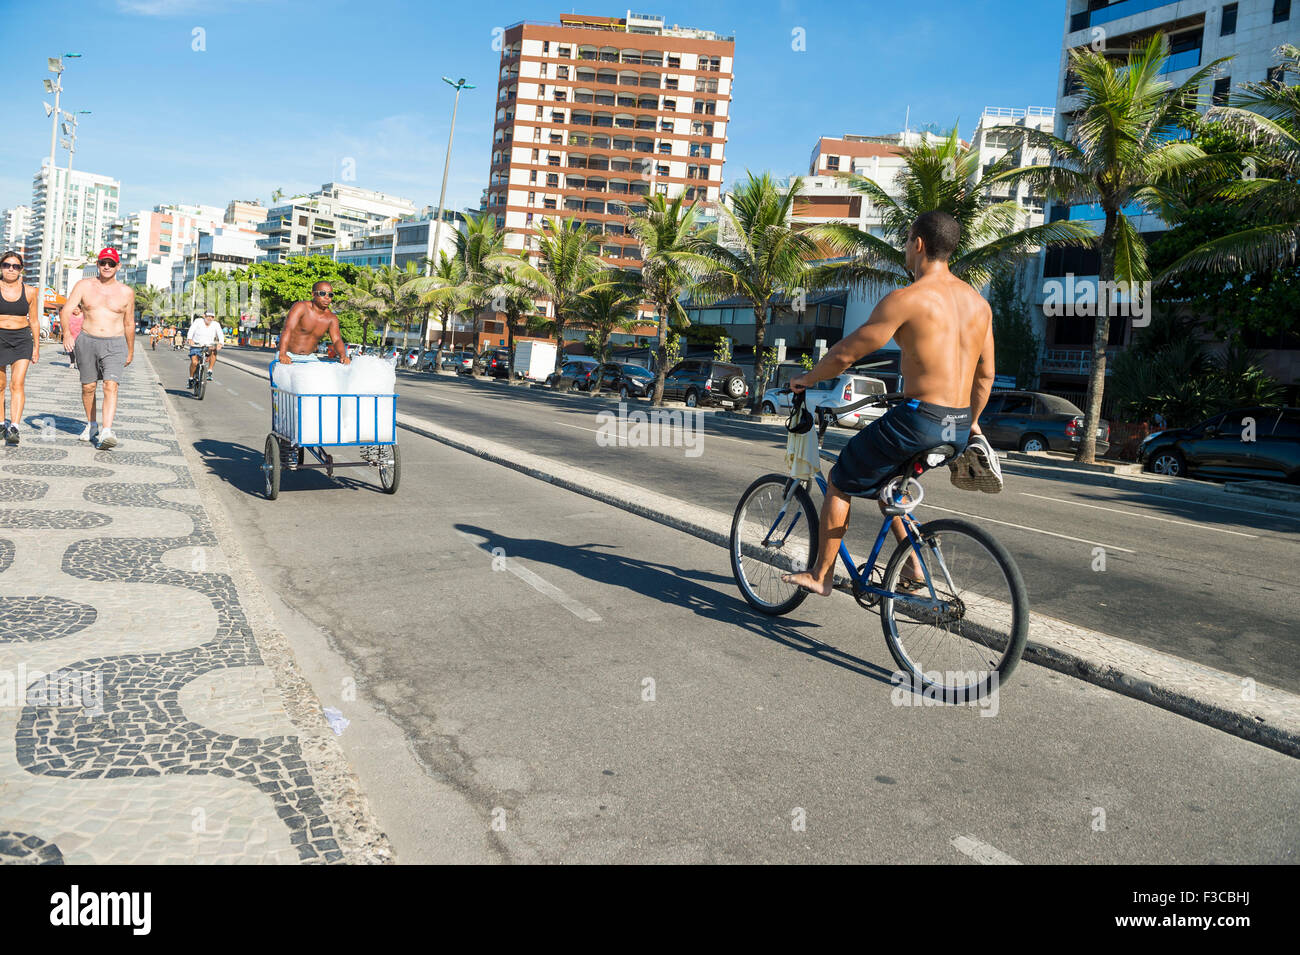 RIO DE JANEIRO, BRAZIL - FEBRUARY 22, 2014: Cyclist shares the bike lane with vendor delivering bags of fresh ice - Stock Image